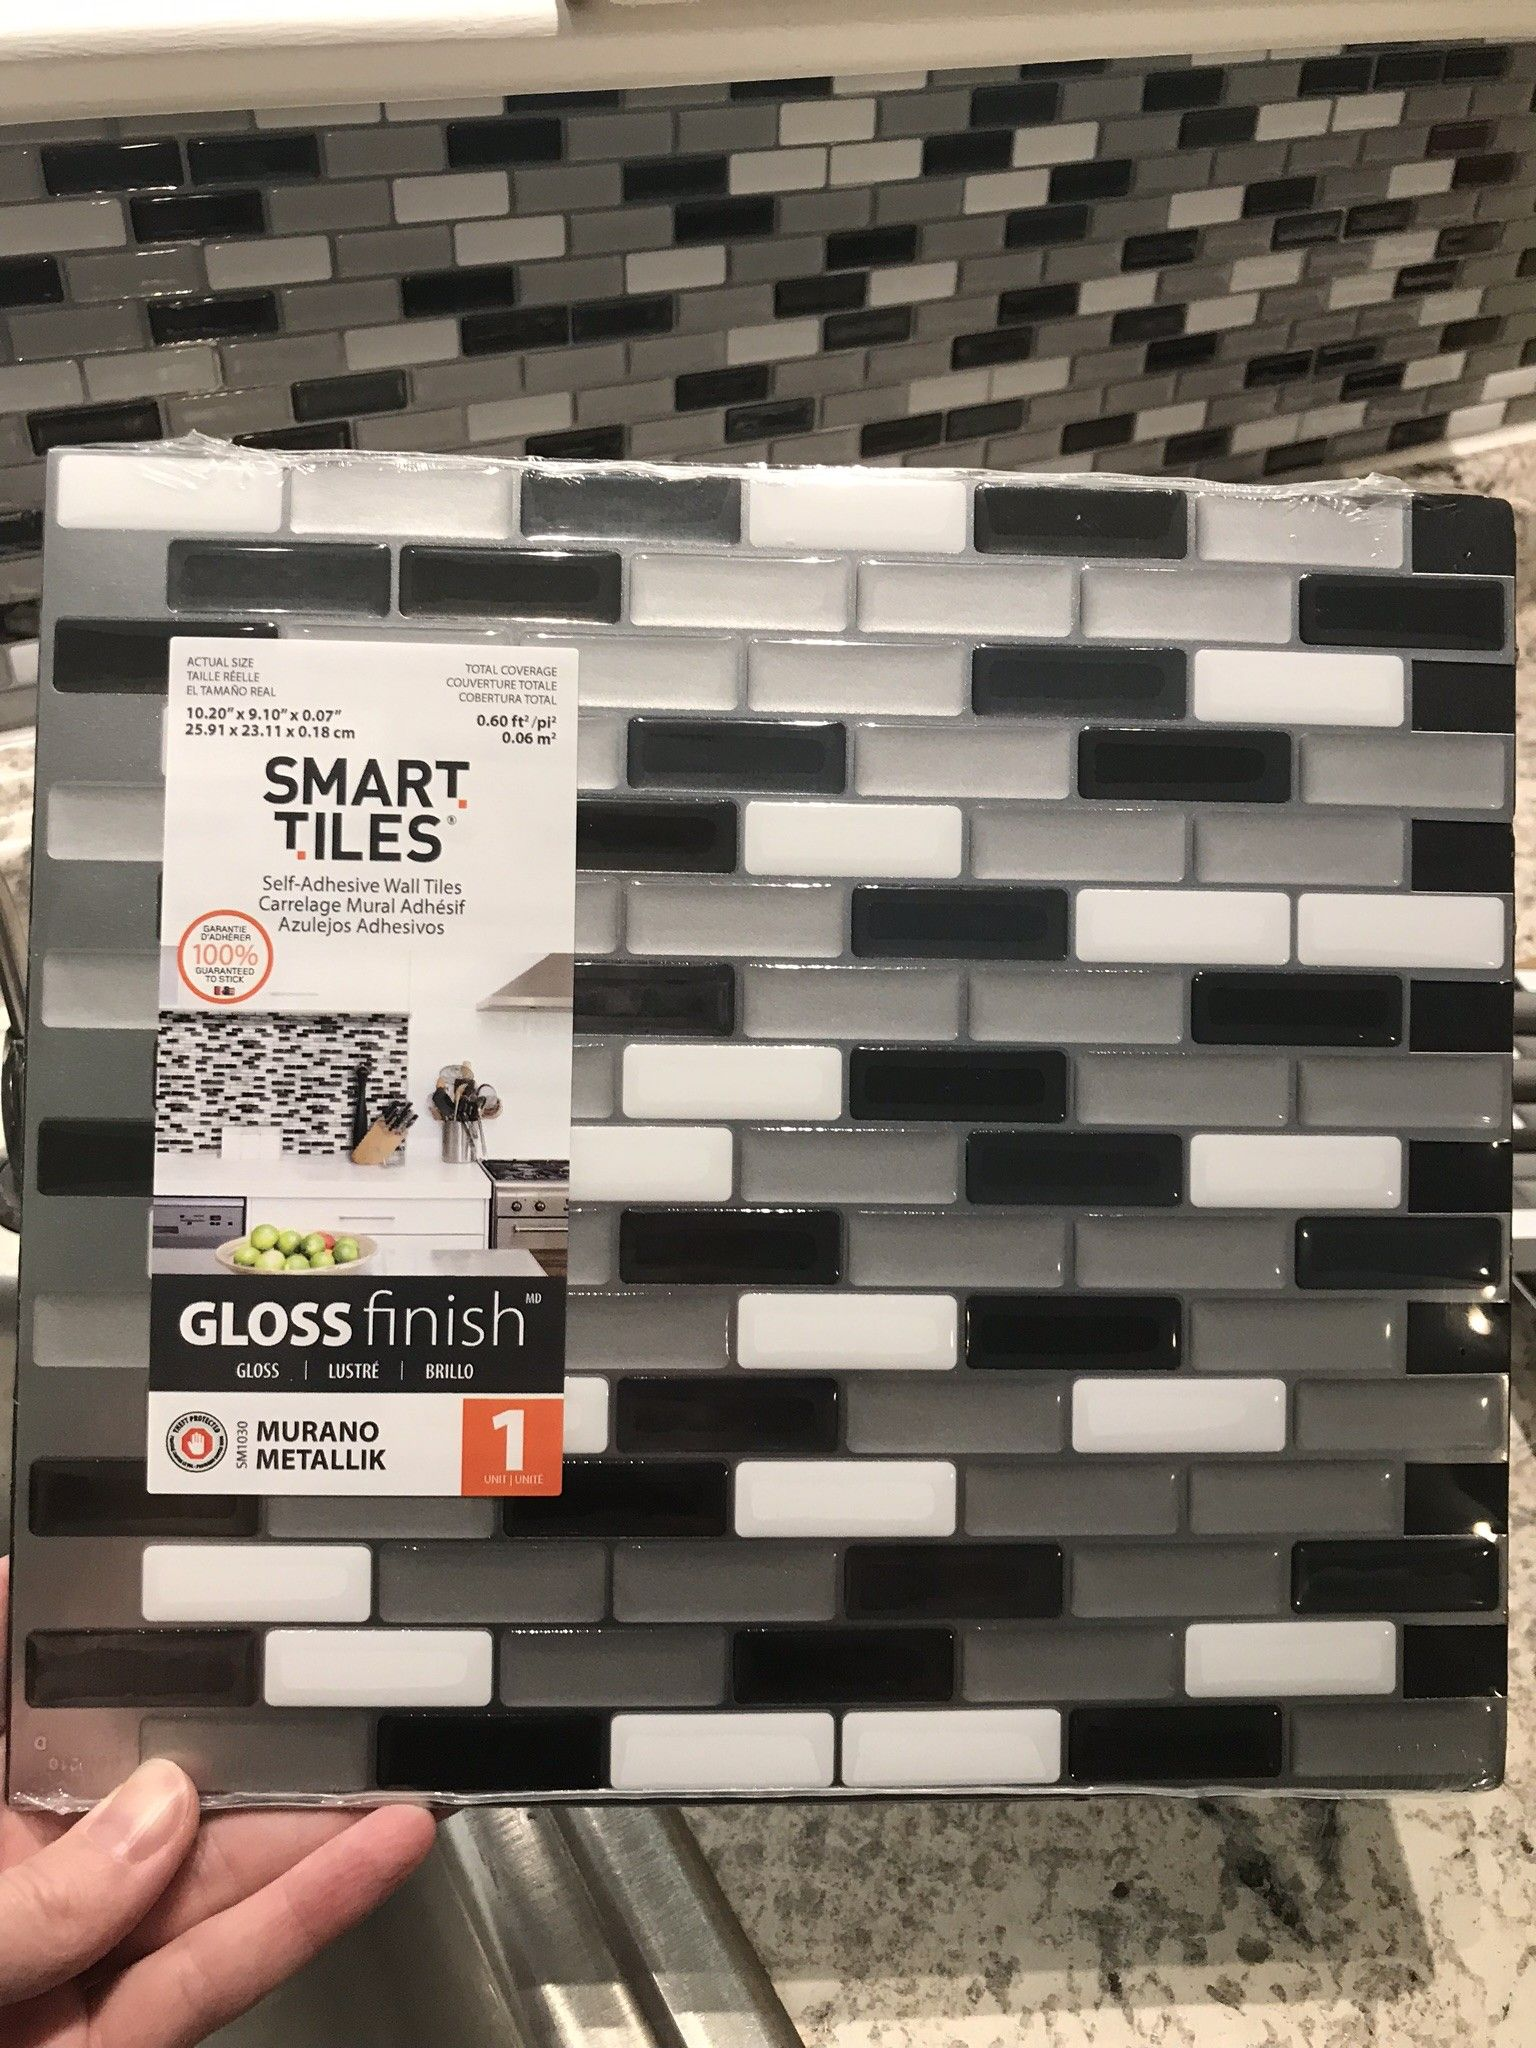 Smart Tiles Murano Metallik Black Grey And White 10 20 In W X 9 10 In H Decorative Mosaic Wall Tile Backsplash 4 Pack Sm1030 4 The Home Depot Glass Tile Backsplash Glass Tile Backsplash